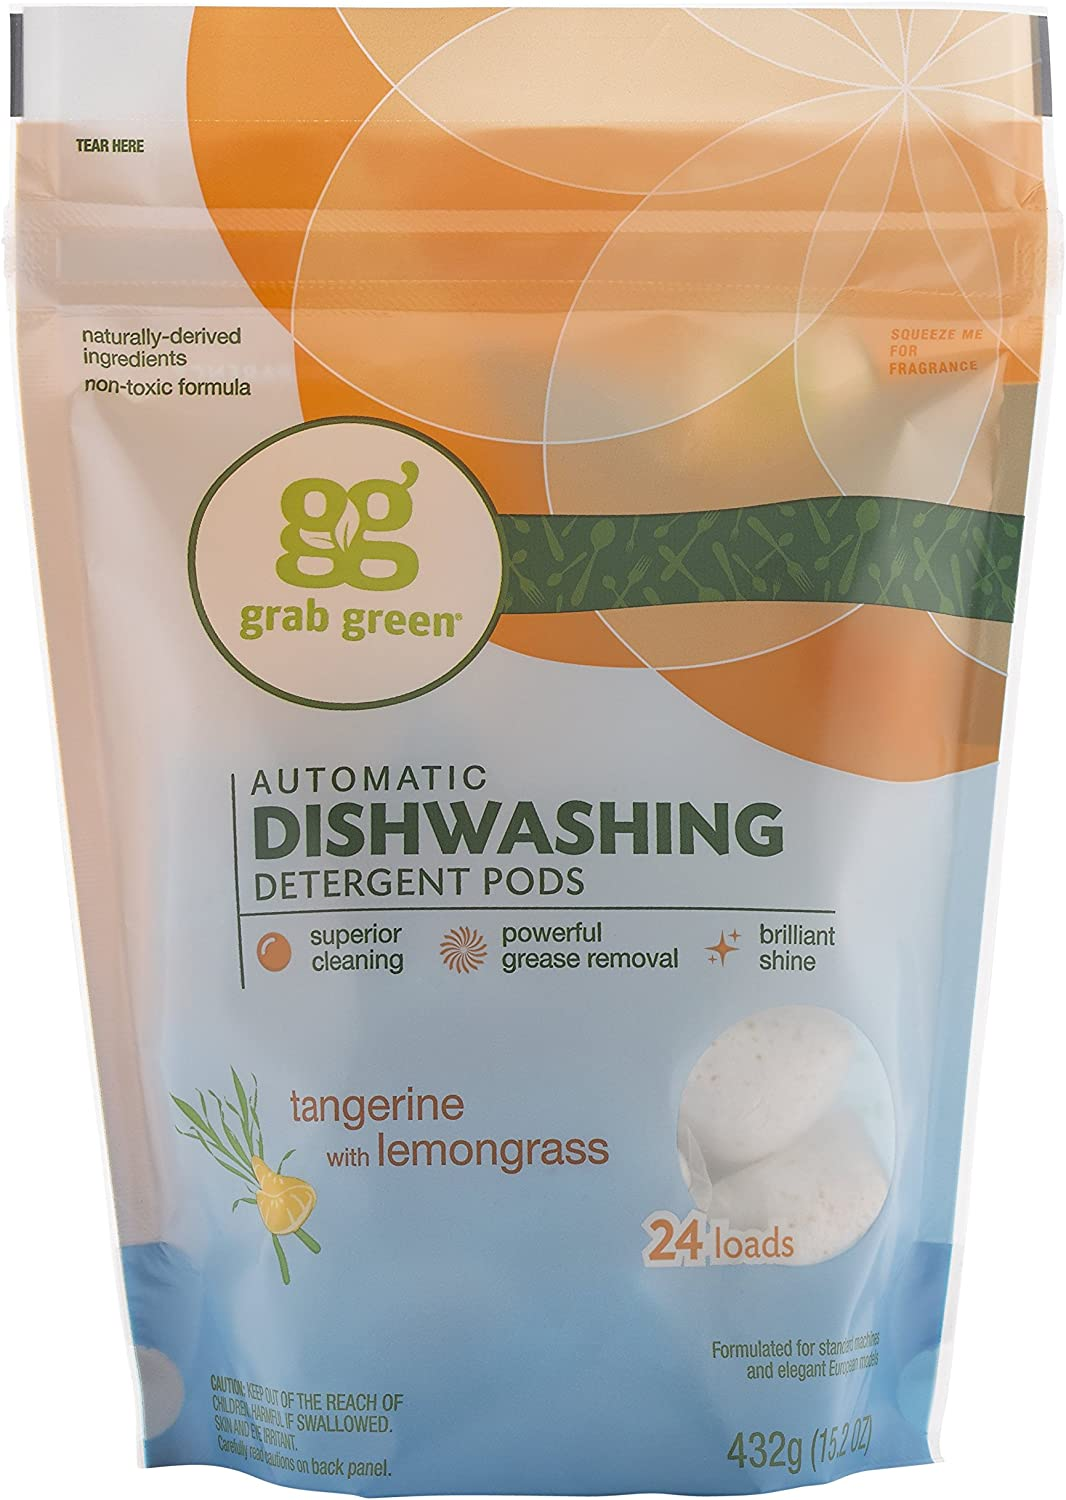 Grab Green Natural Dishwasher Detergent Pods, Organic Enzyme-Powered, Plant & Mineral-Based, Tangerine + Lemongrass—With Essential Oils, 24 Count